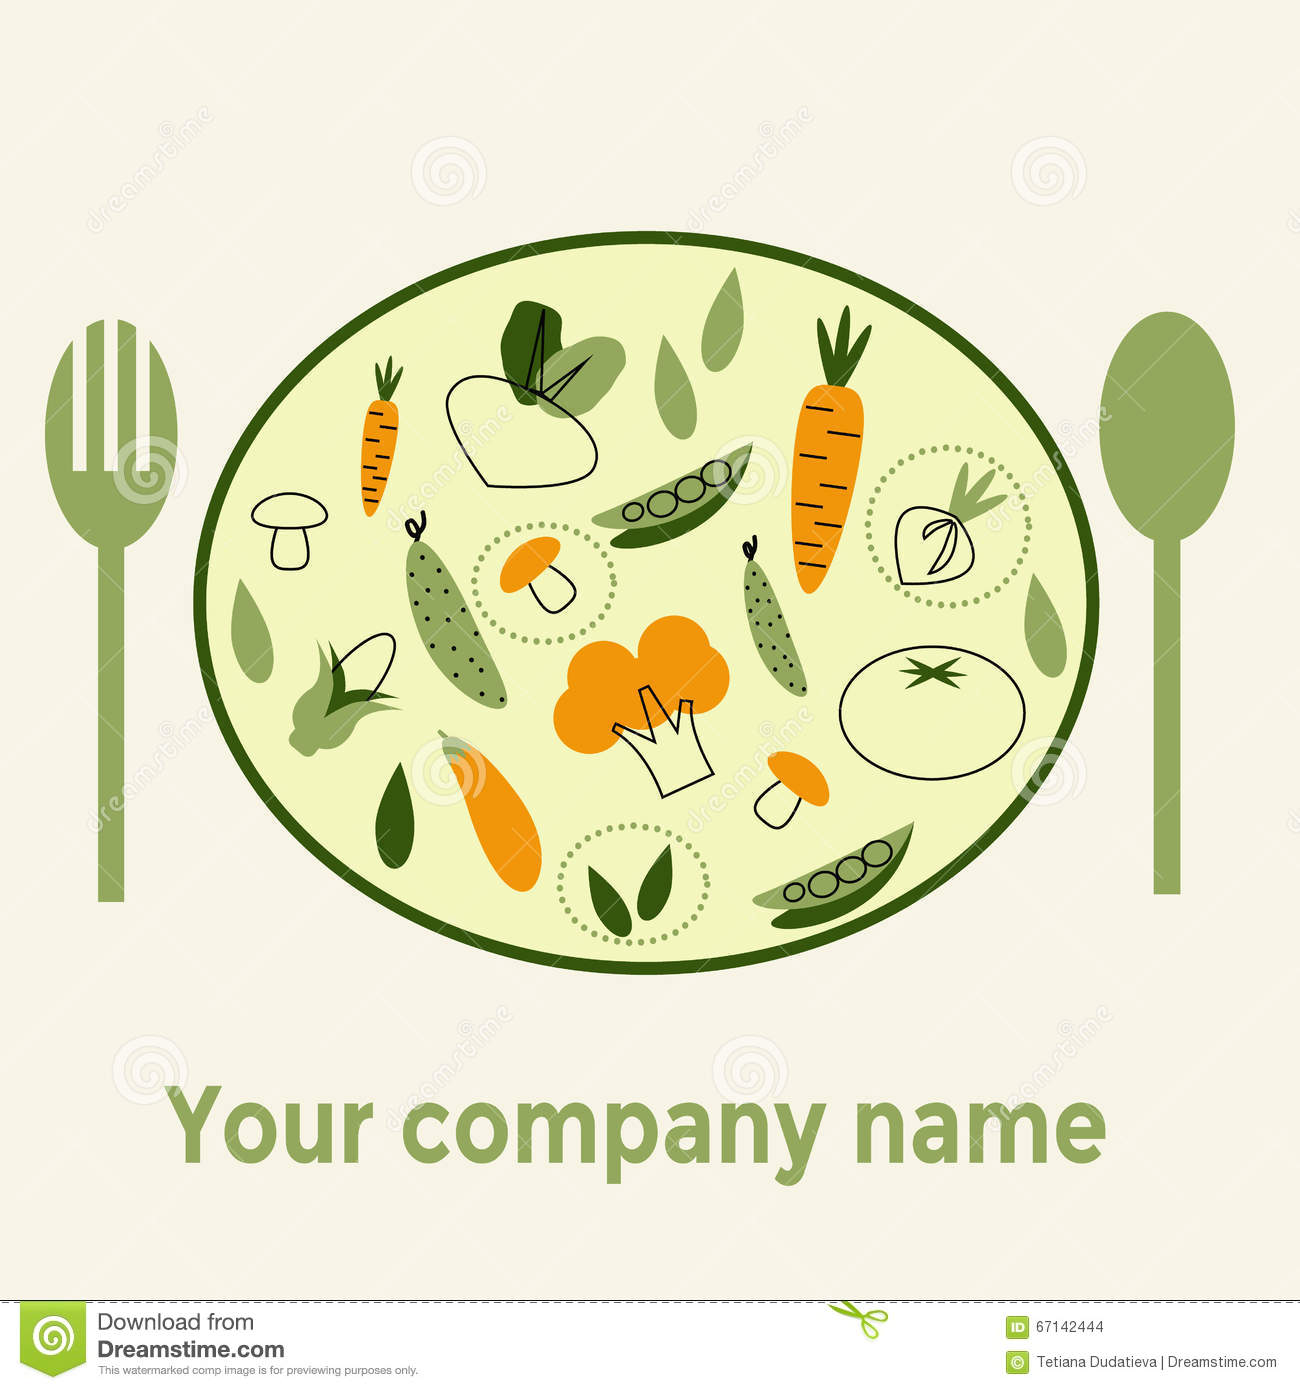 Company Name Healthy Food On White Background With Trendy Linear